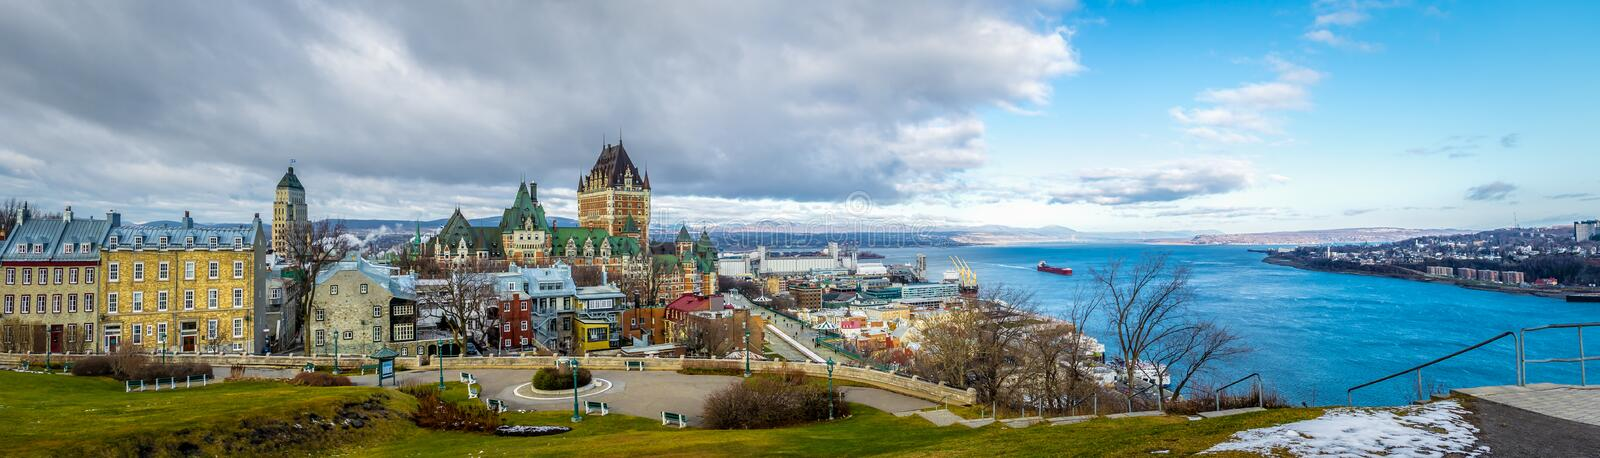 Panoramic view of Quebec City skyline with Chateau Frontenac and Saint Lawrence river - Quebec City, Quebec, Canada royalty free stock photography